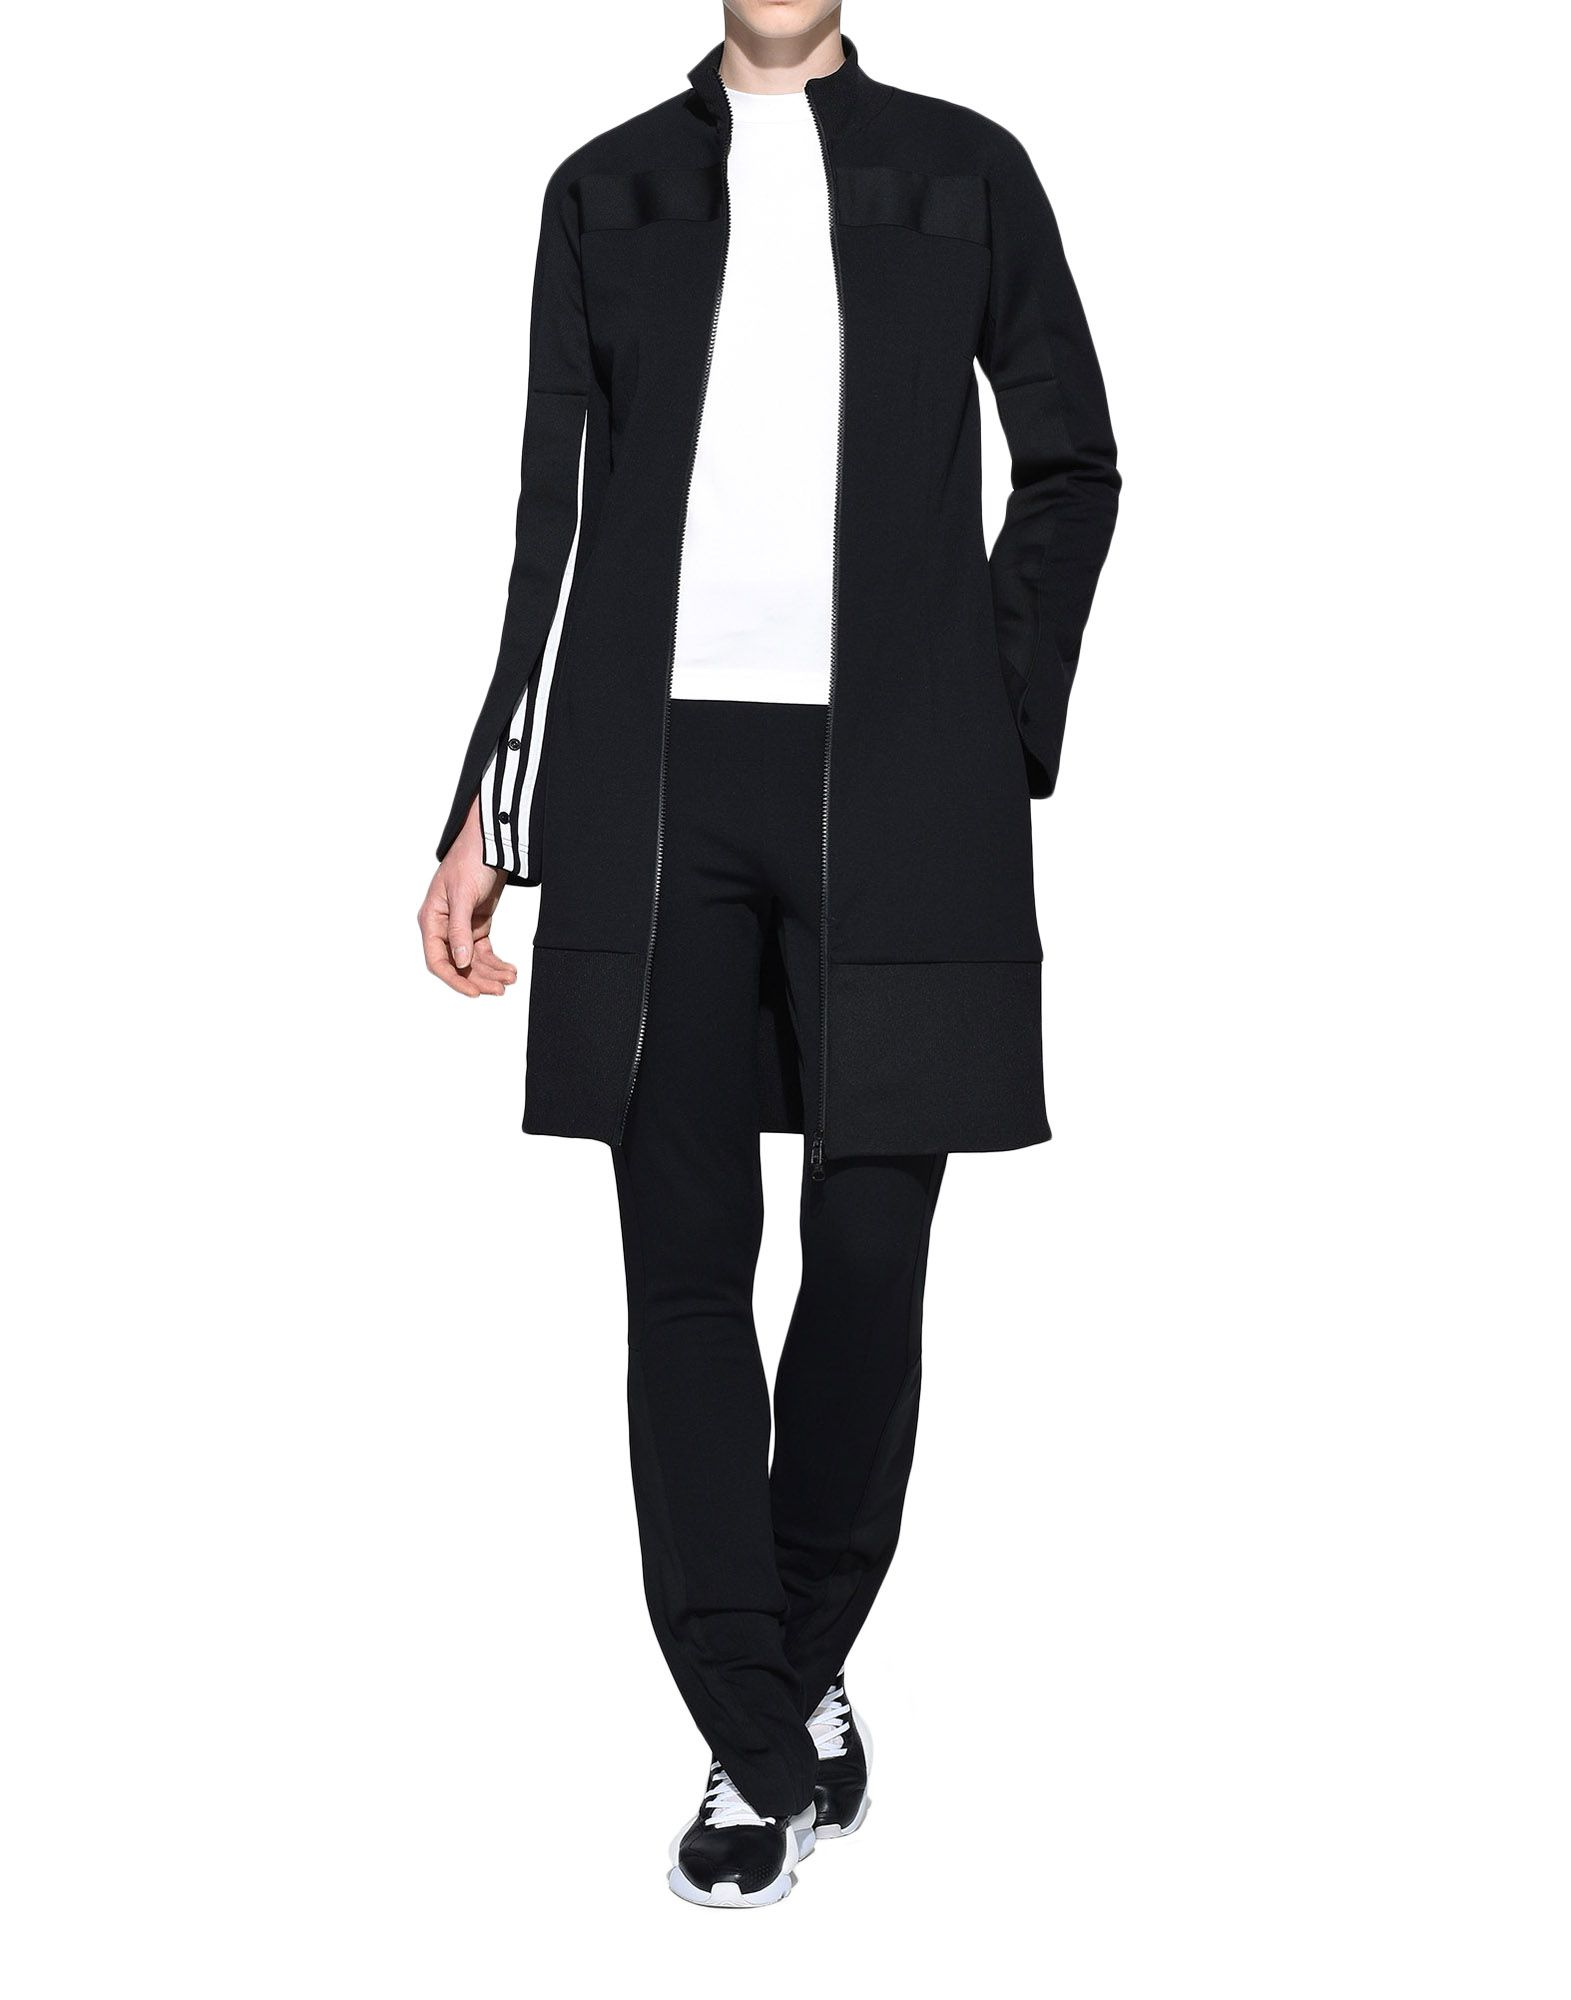 Y-3 Y-3 3-Stripes Firebird Track Jacket Track top Woman a